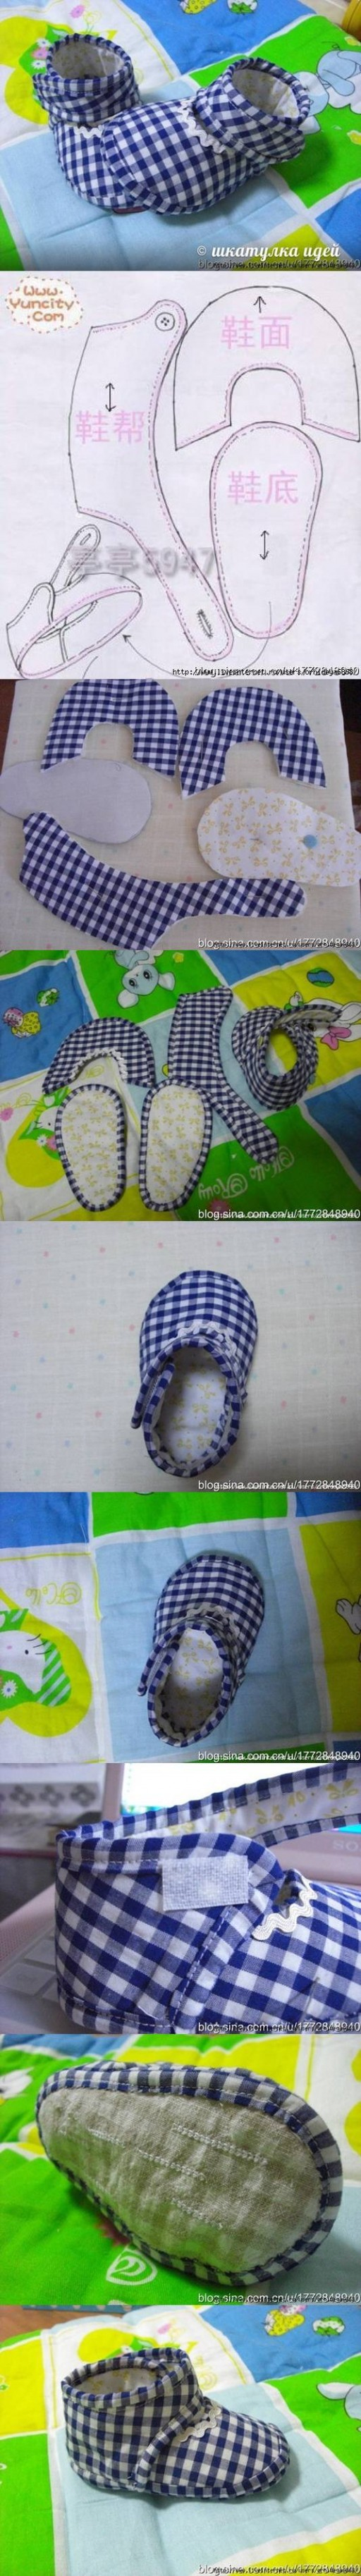 How to make Slippers for Babies step by step DIY tutorial instructions